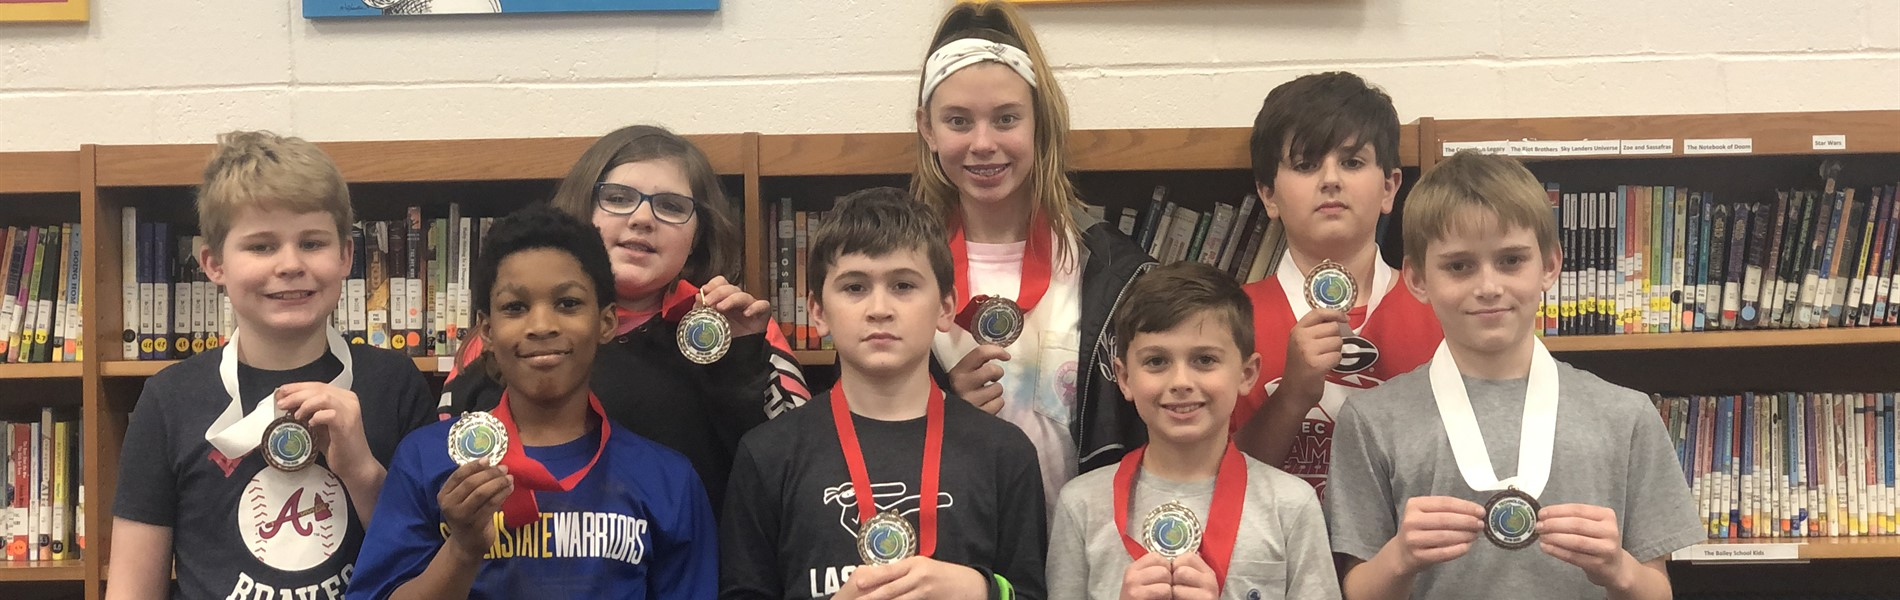 Okefenokee Student Technology Competition Top Finishers